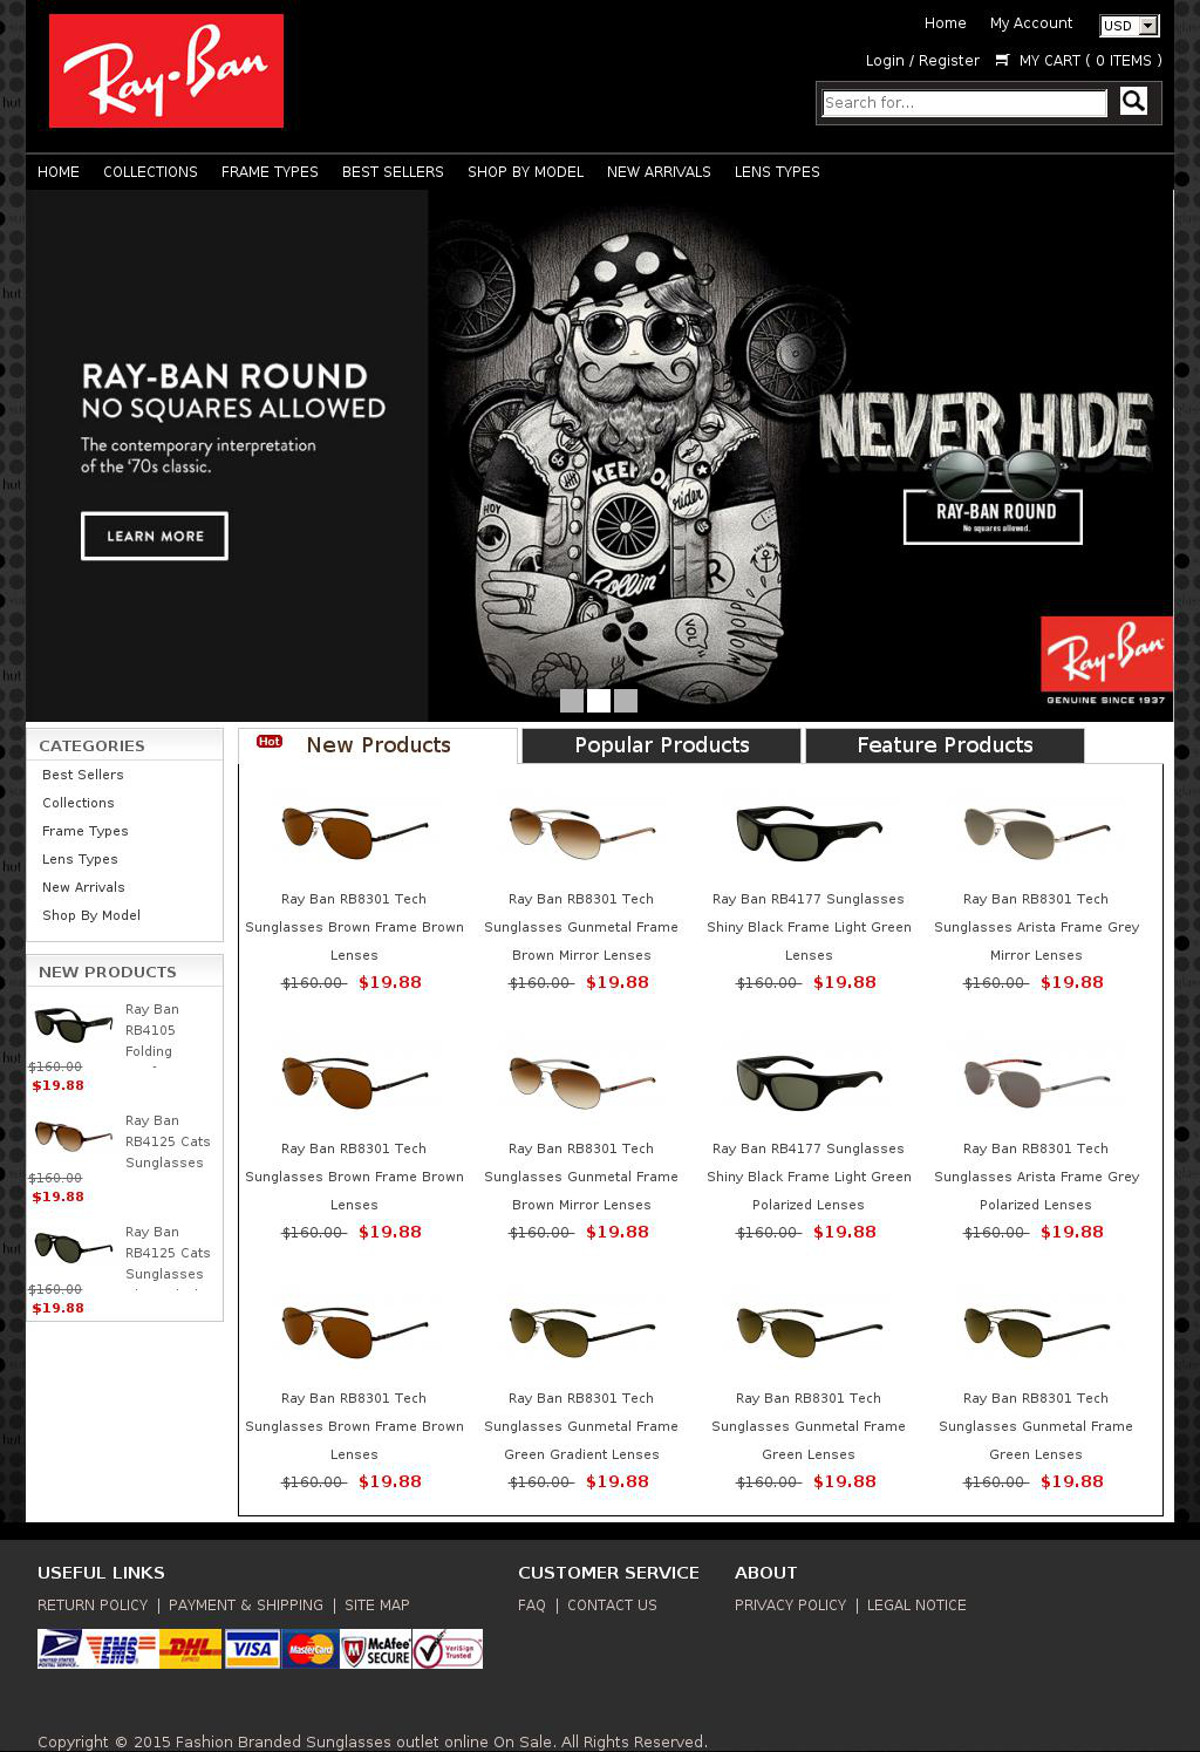 fake ray bans online  Fake Ray-Ban Sunglasses Online Email - MailShark